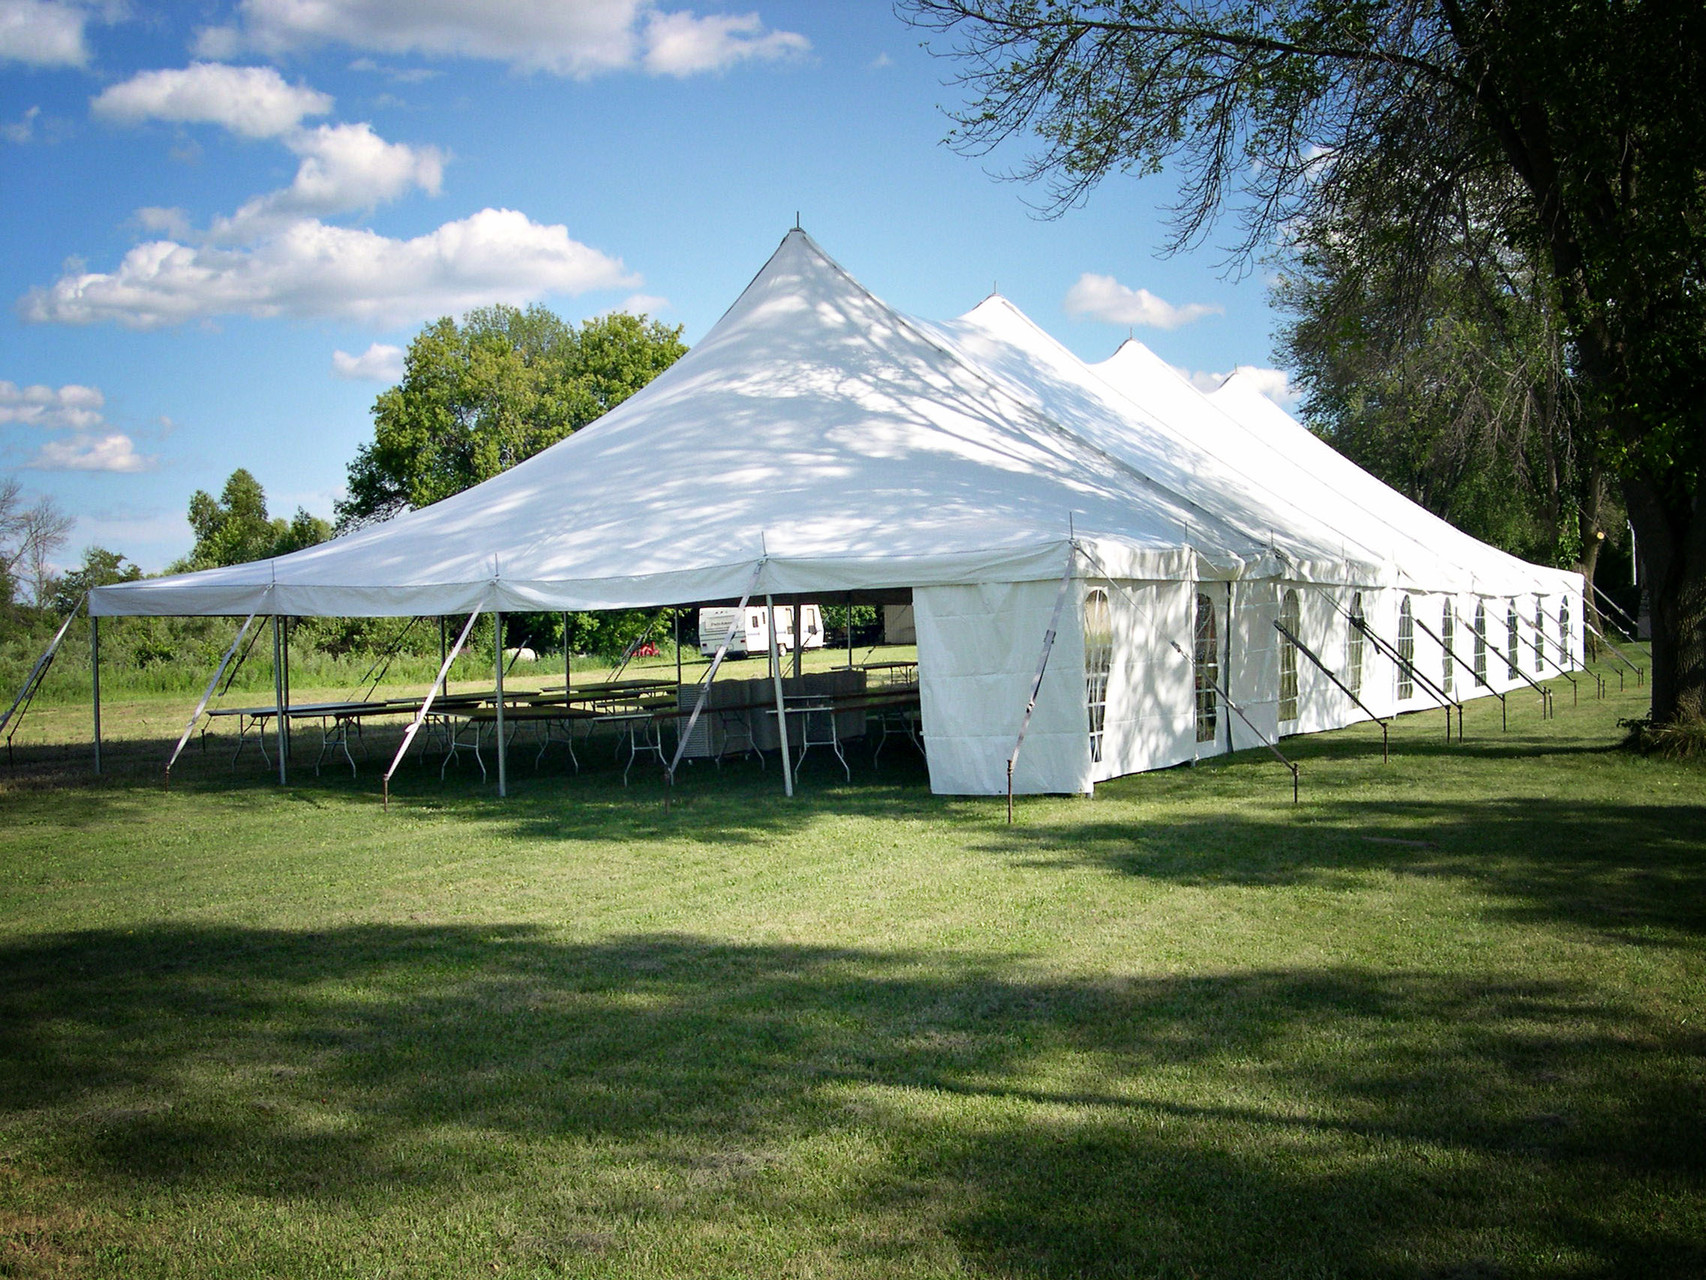 40 x 100 Wedding tent will seat over 380 people with room for a dance floor